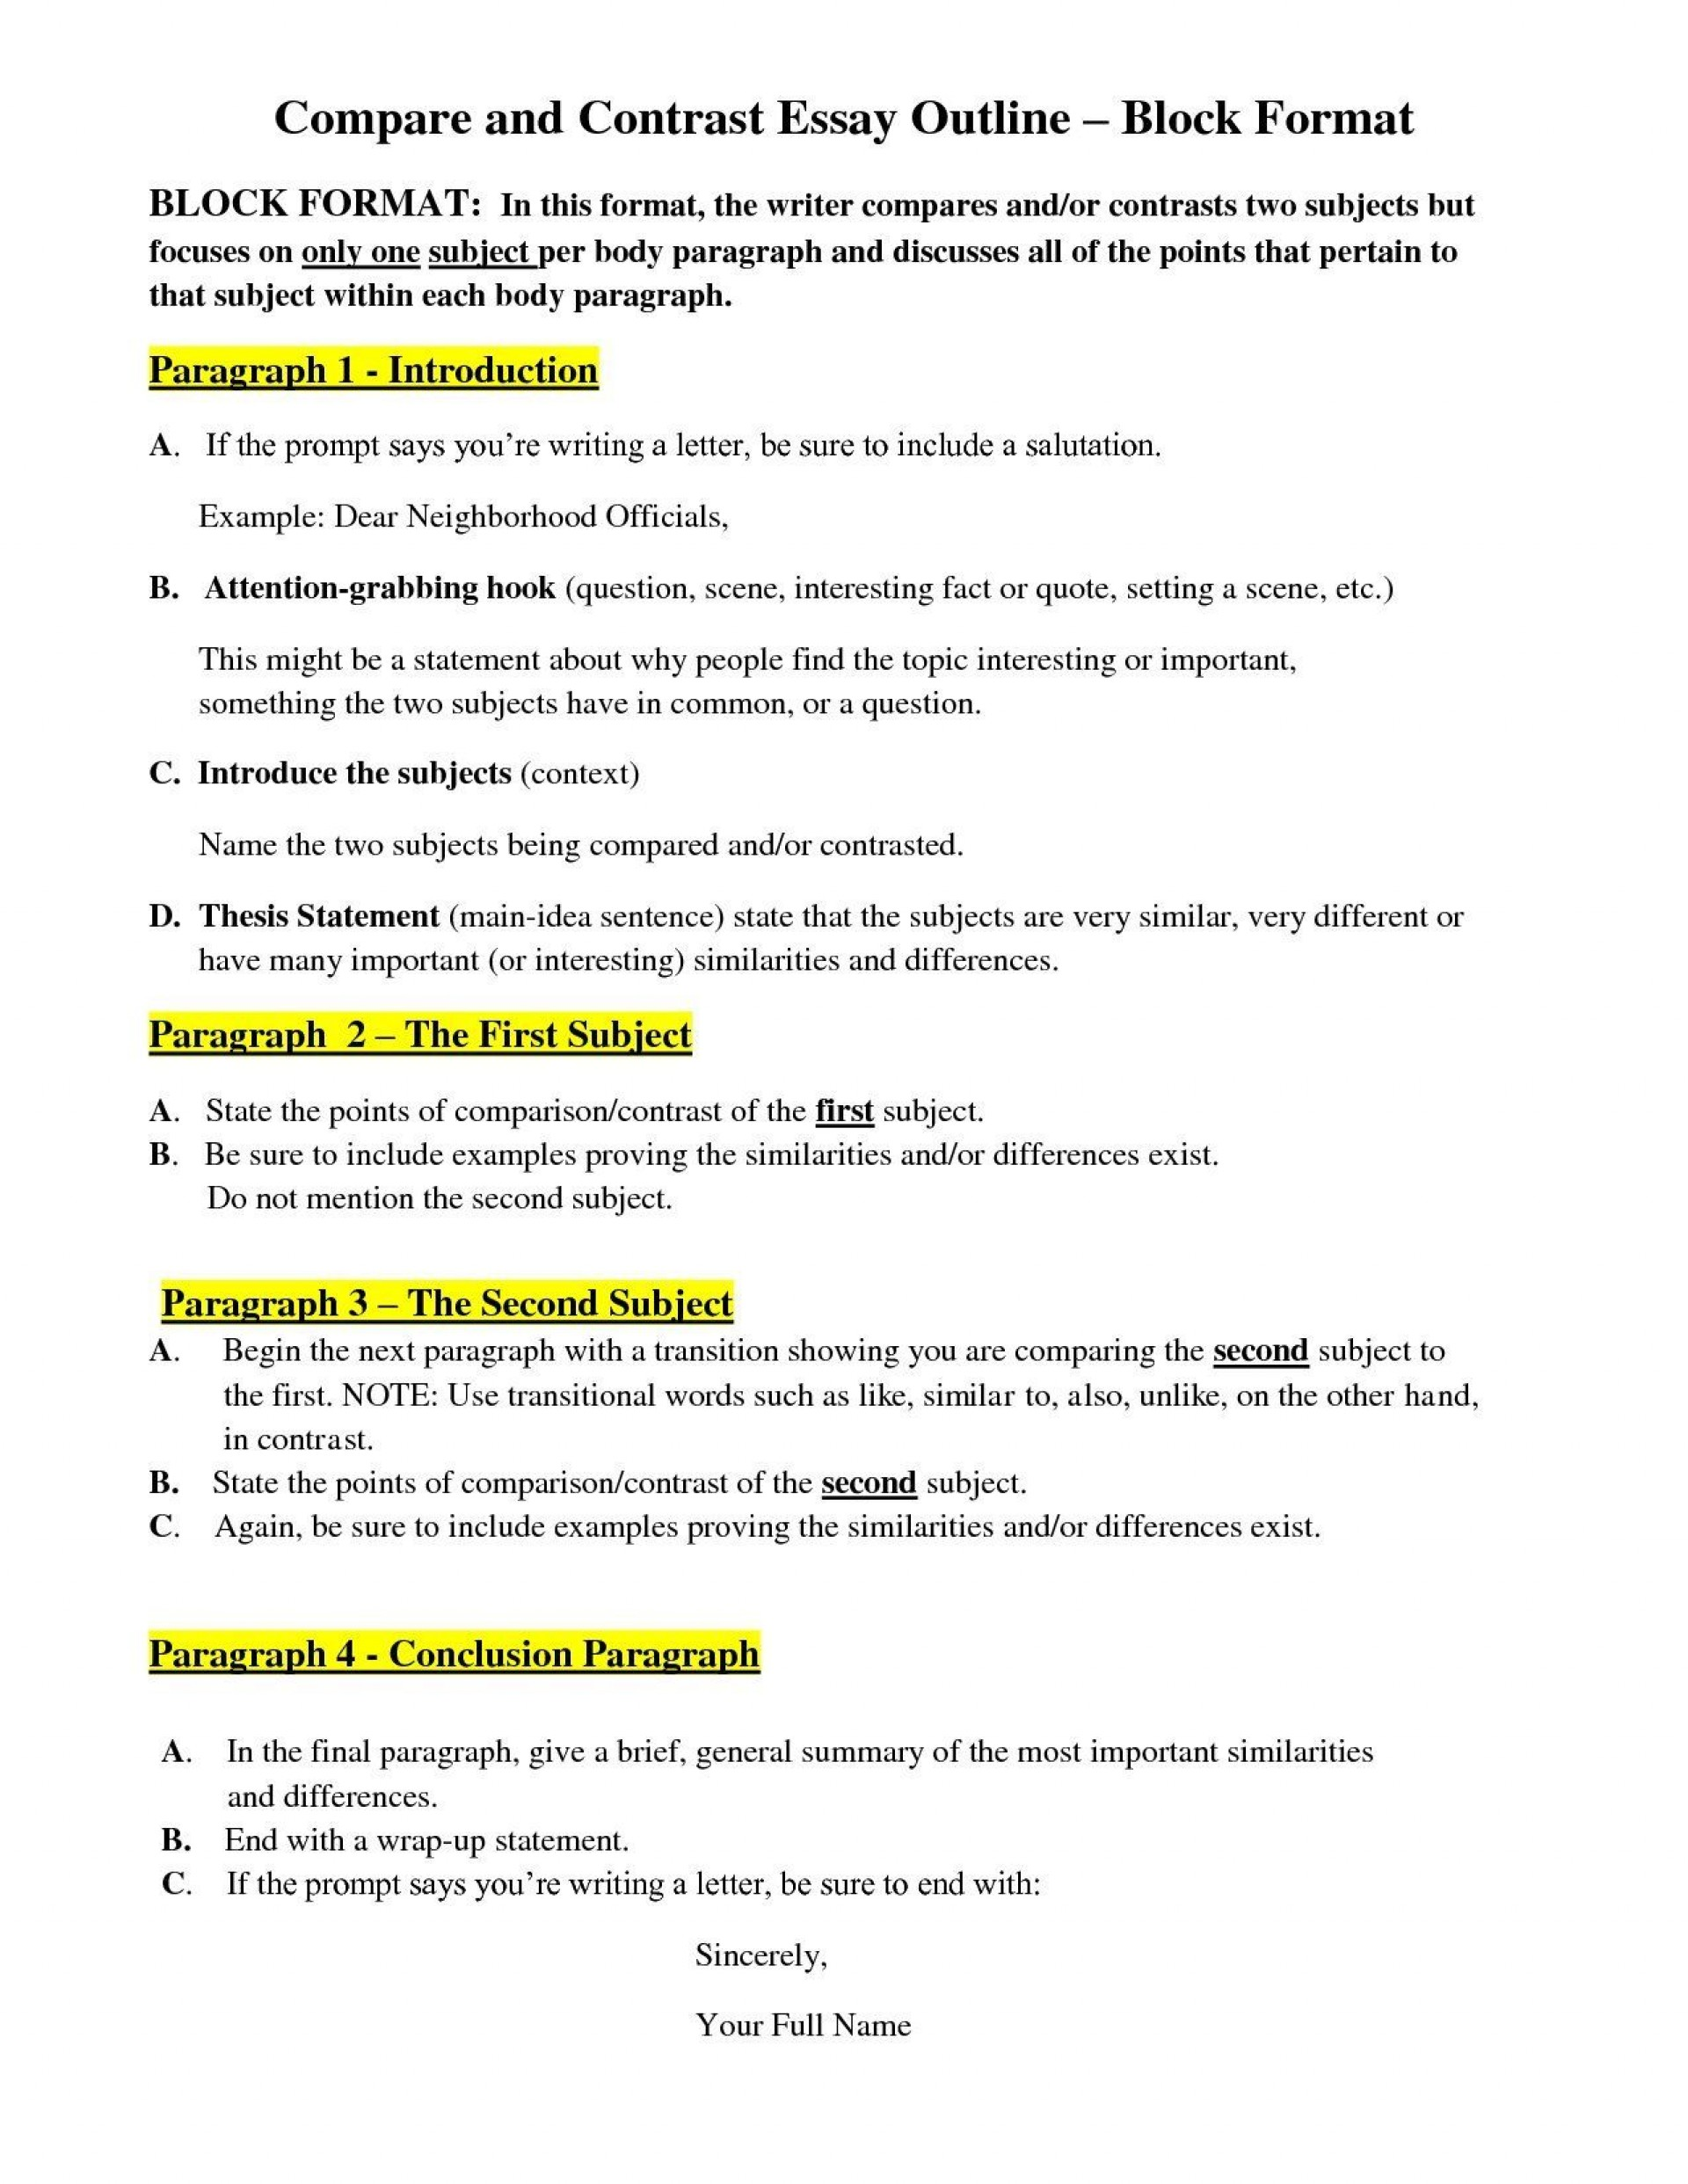 006 Comparison And Contrast Essay Outline Example Impressive Compare 5th Grade High School Template 1920